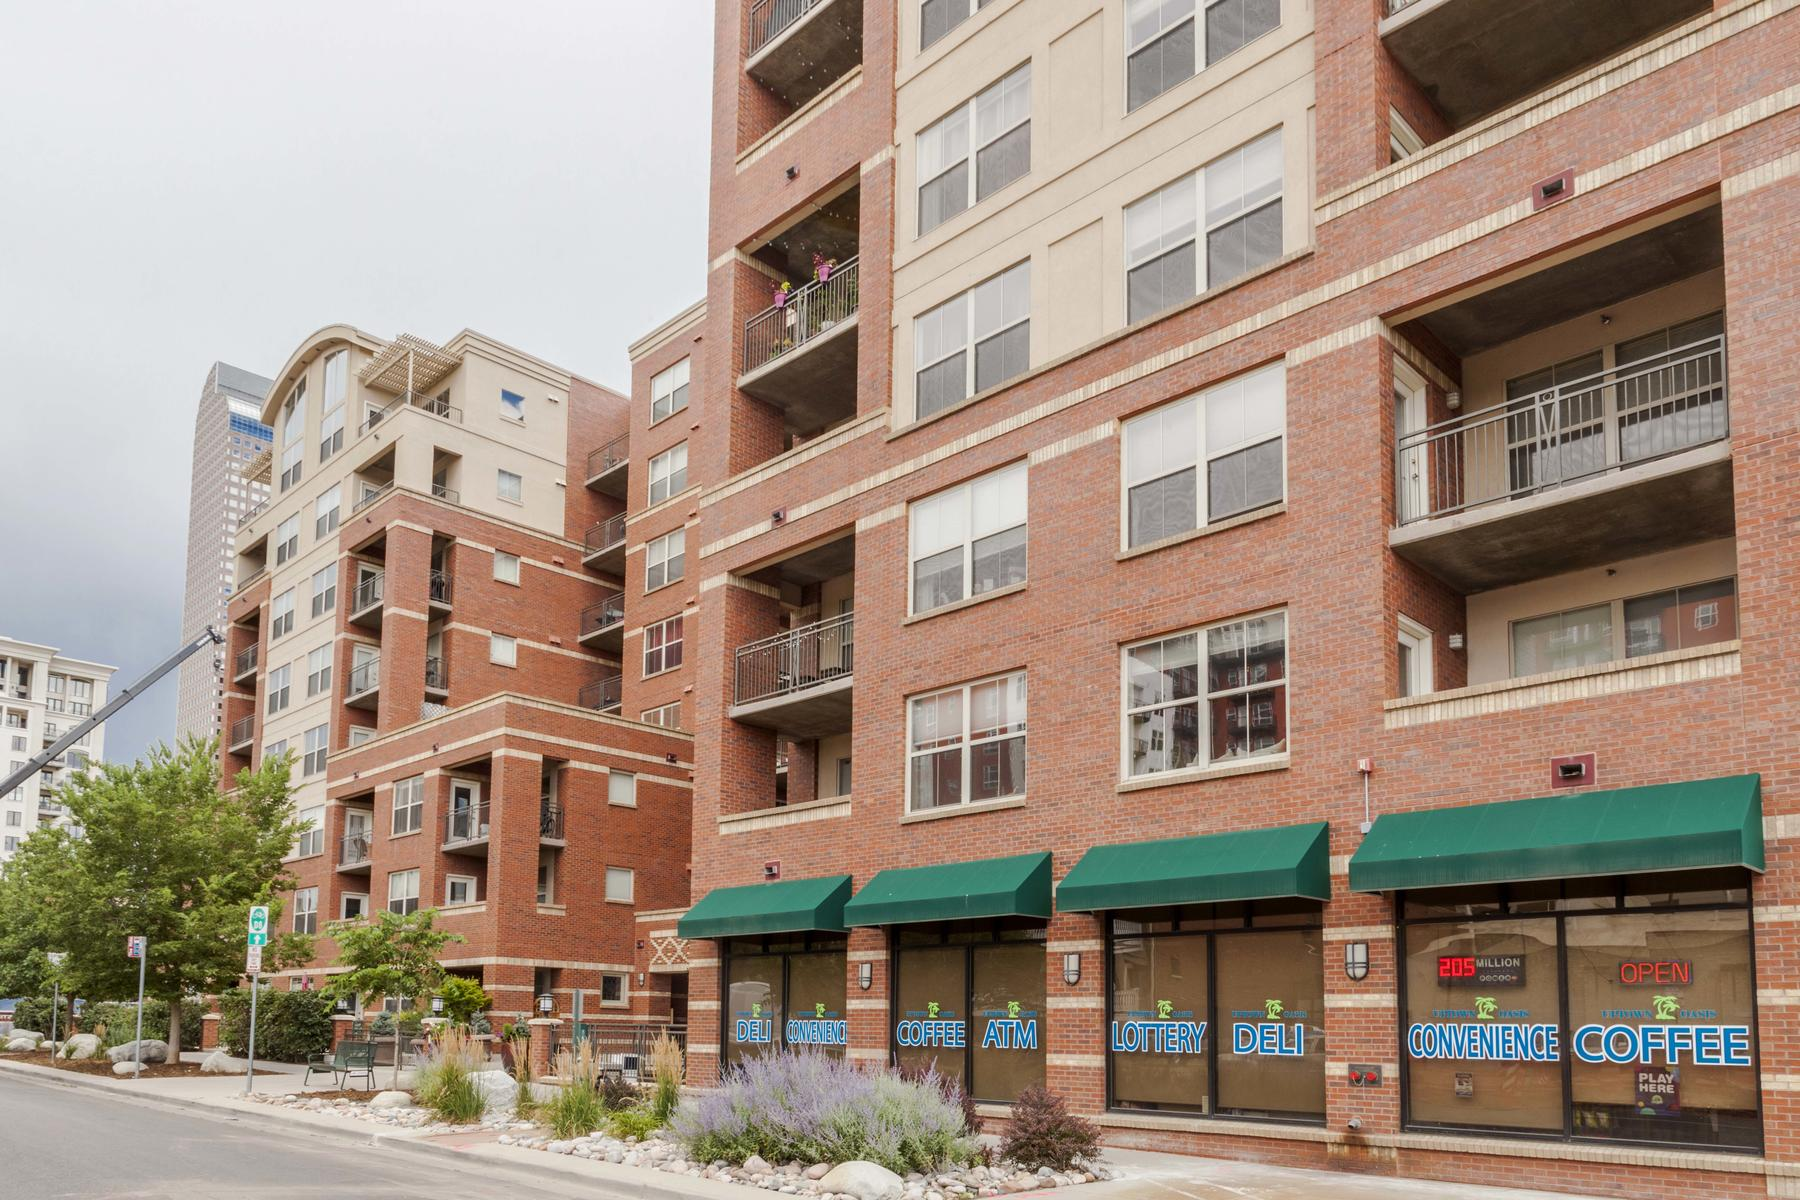 Additional photo for property listing at Townhome With The Best City Lifestyle and Location Available! 2200 Tremont Place #6 Denver, Colorado 80205 United States